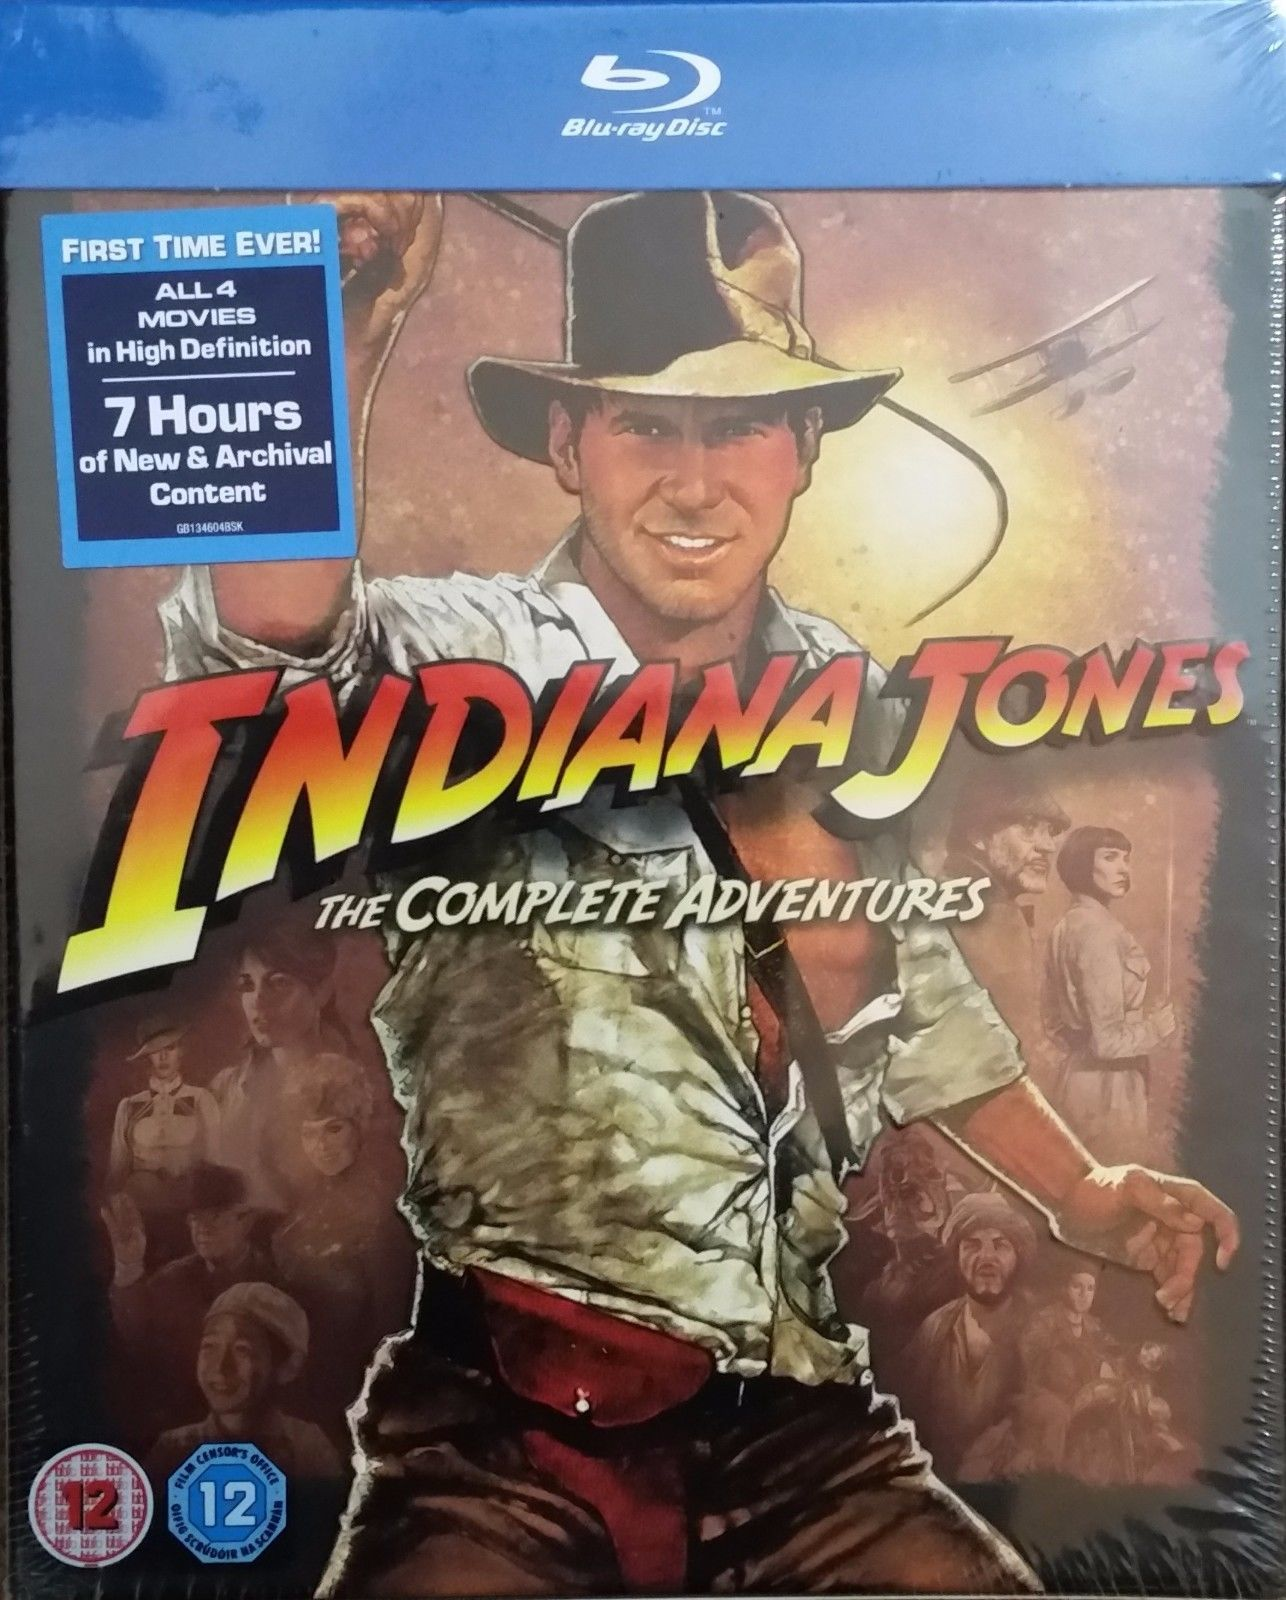 Indiana Jones The Complete Adventures (Blu-ray Disc Set) New Raiders of Lost Ark